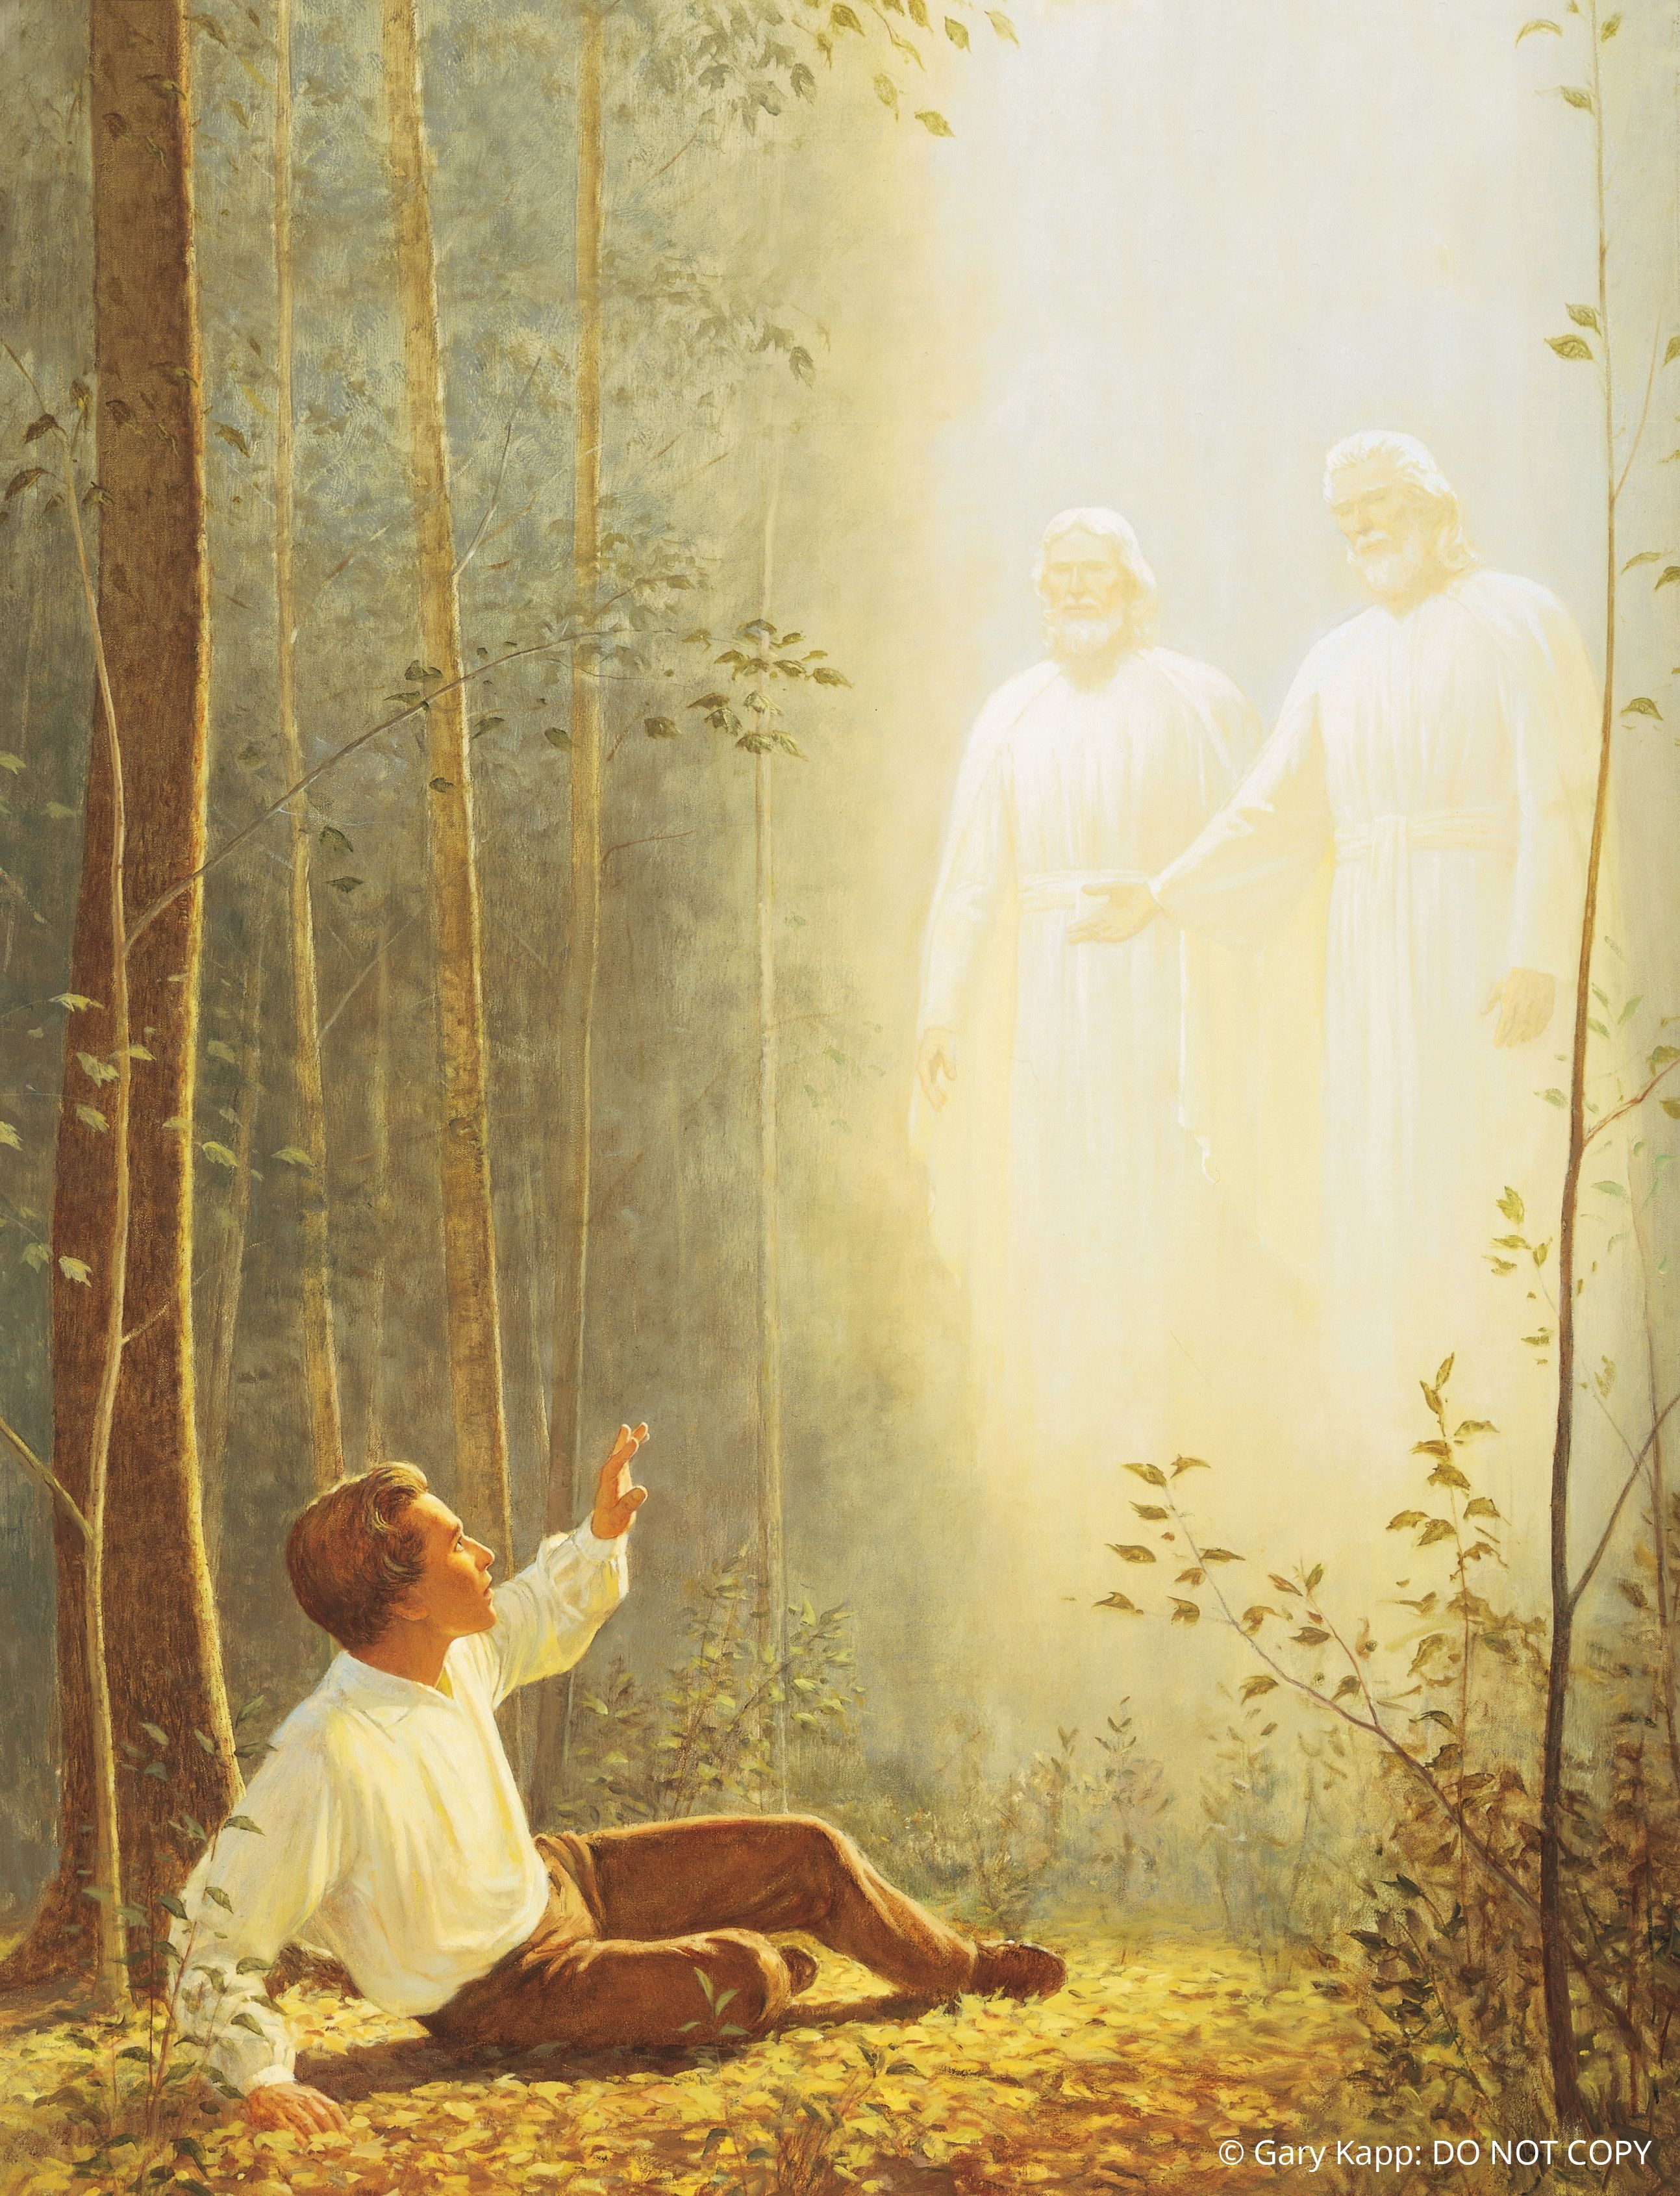 Lehi's Dream, by Jerry Thompson (62620); GAB 69; Primary manual 4-12; 1 Nephi 8; 1 Nephi 11–12